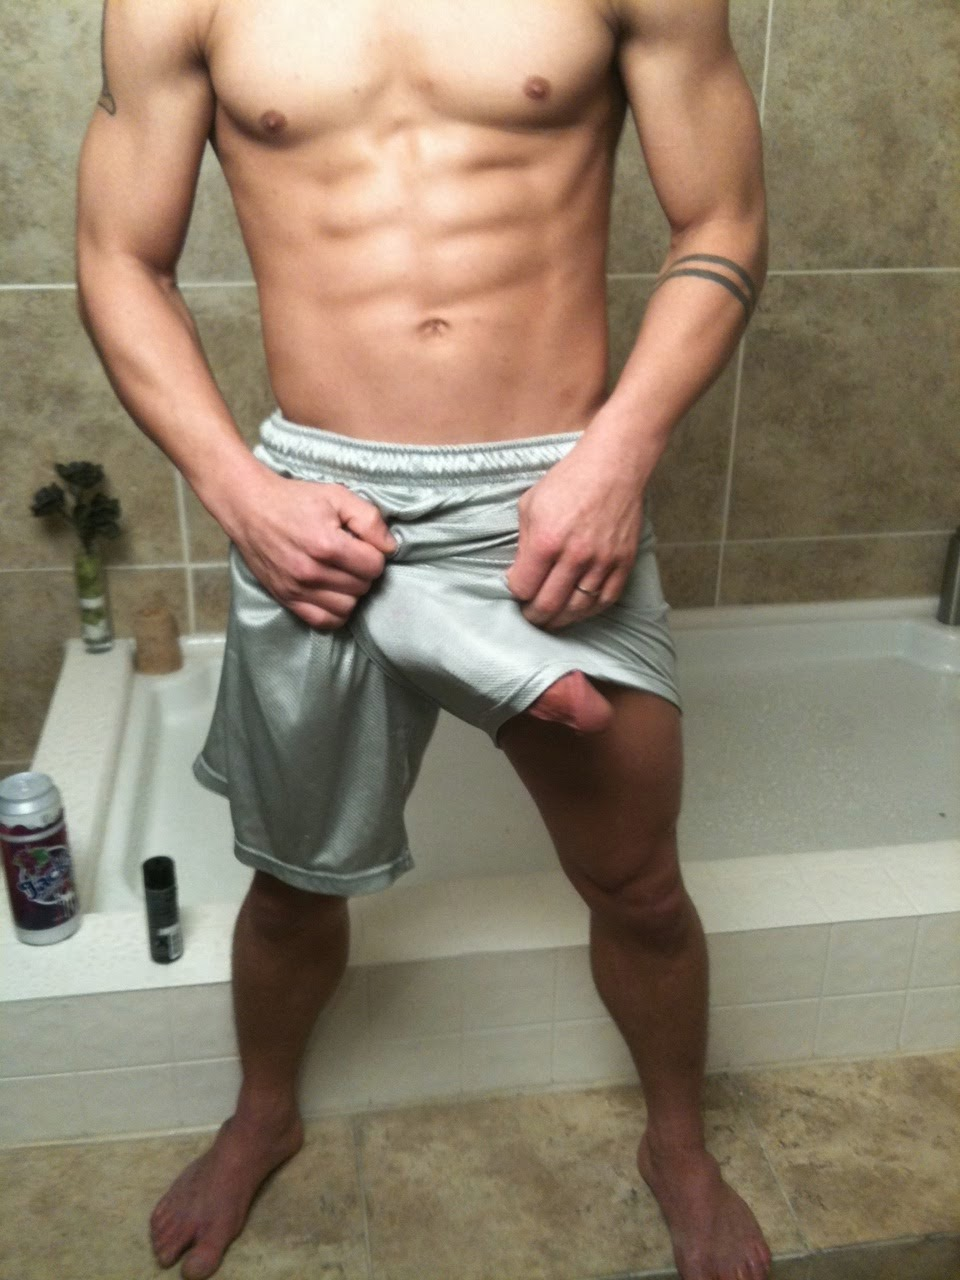 Male with small penis masturbating 8